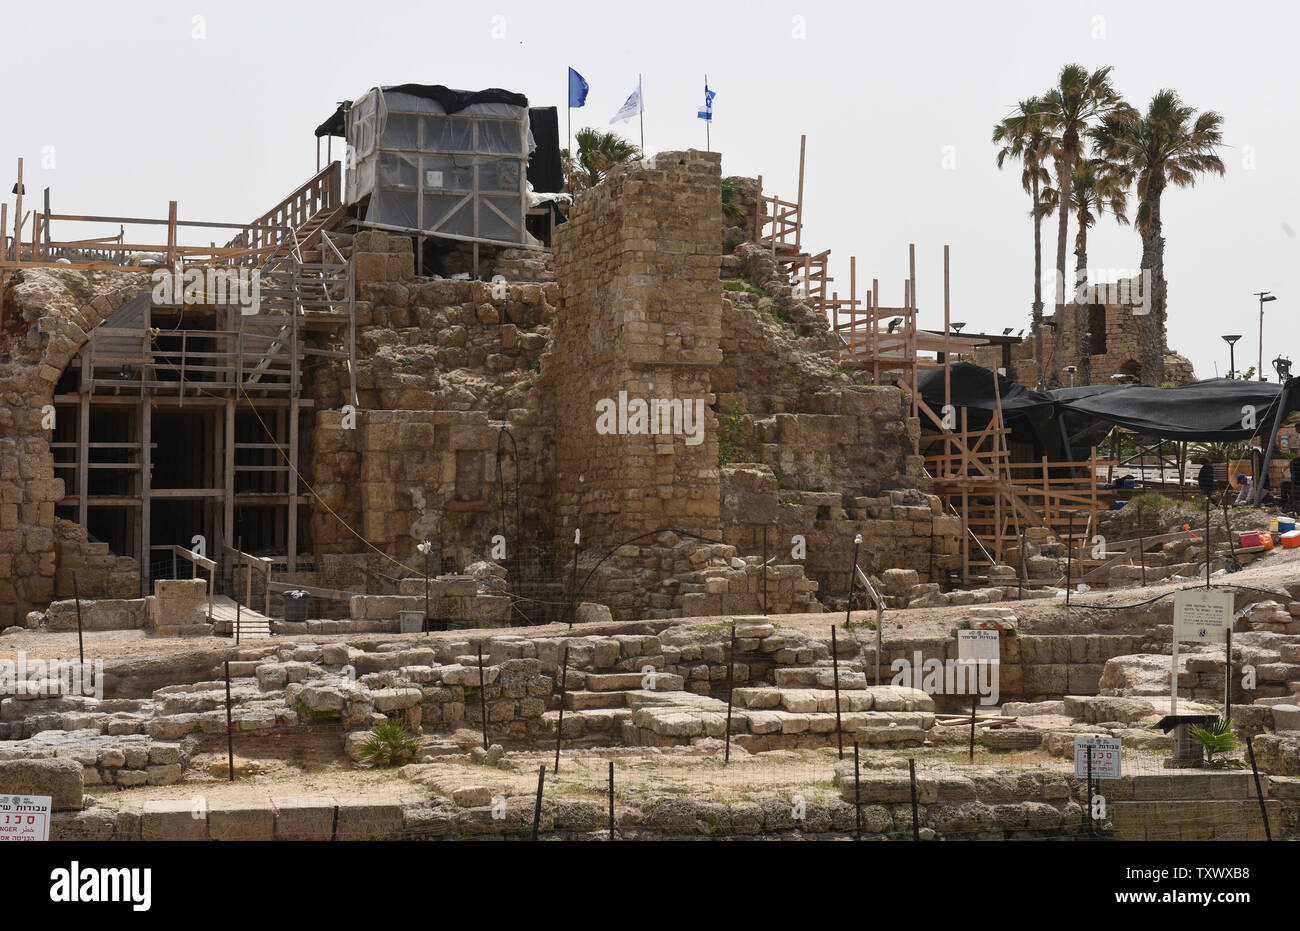 A view of the 'Roma and Augusta Temple' that is being excavated by the Israeli Antiquity Authority in Caesarea, Israel, April 26, 2017. The Temple was constructed in the first century by King Herod in honor of Augustus Caesar. The Edmond de Rothschild Foundations is investing approximately $275,000 to expose and restore Caesarea's hidden treasures.  Photo by Debbie Hill/UPI - Stock Image